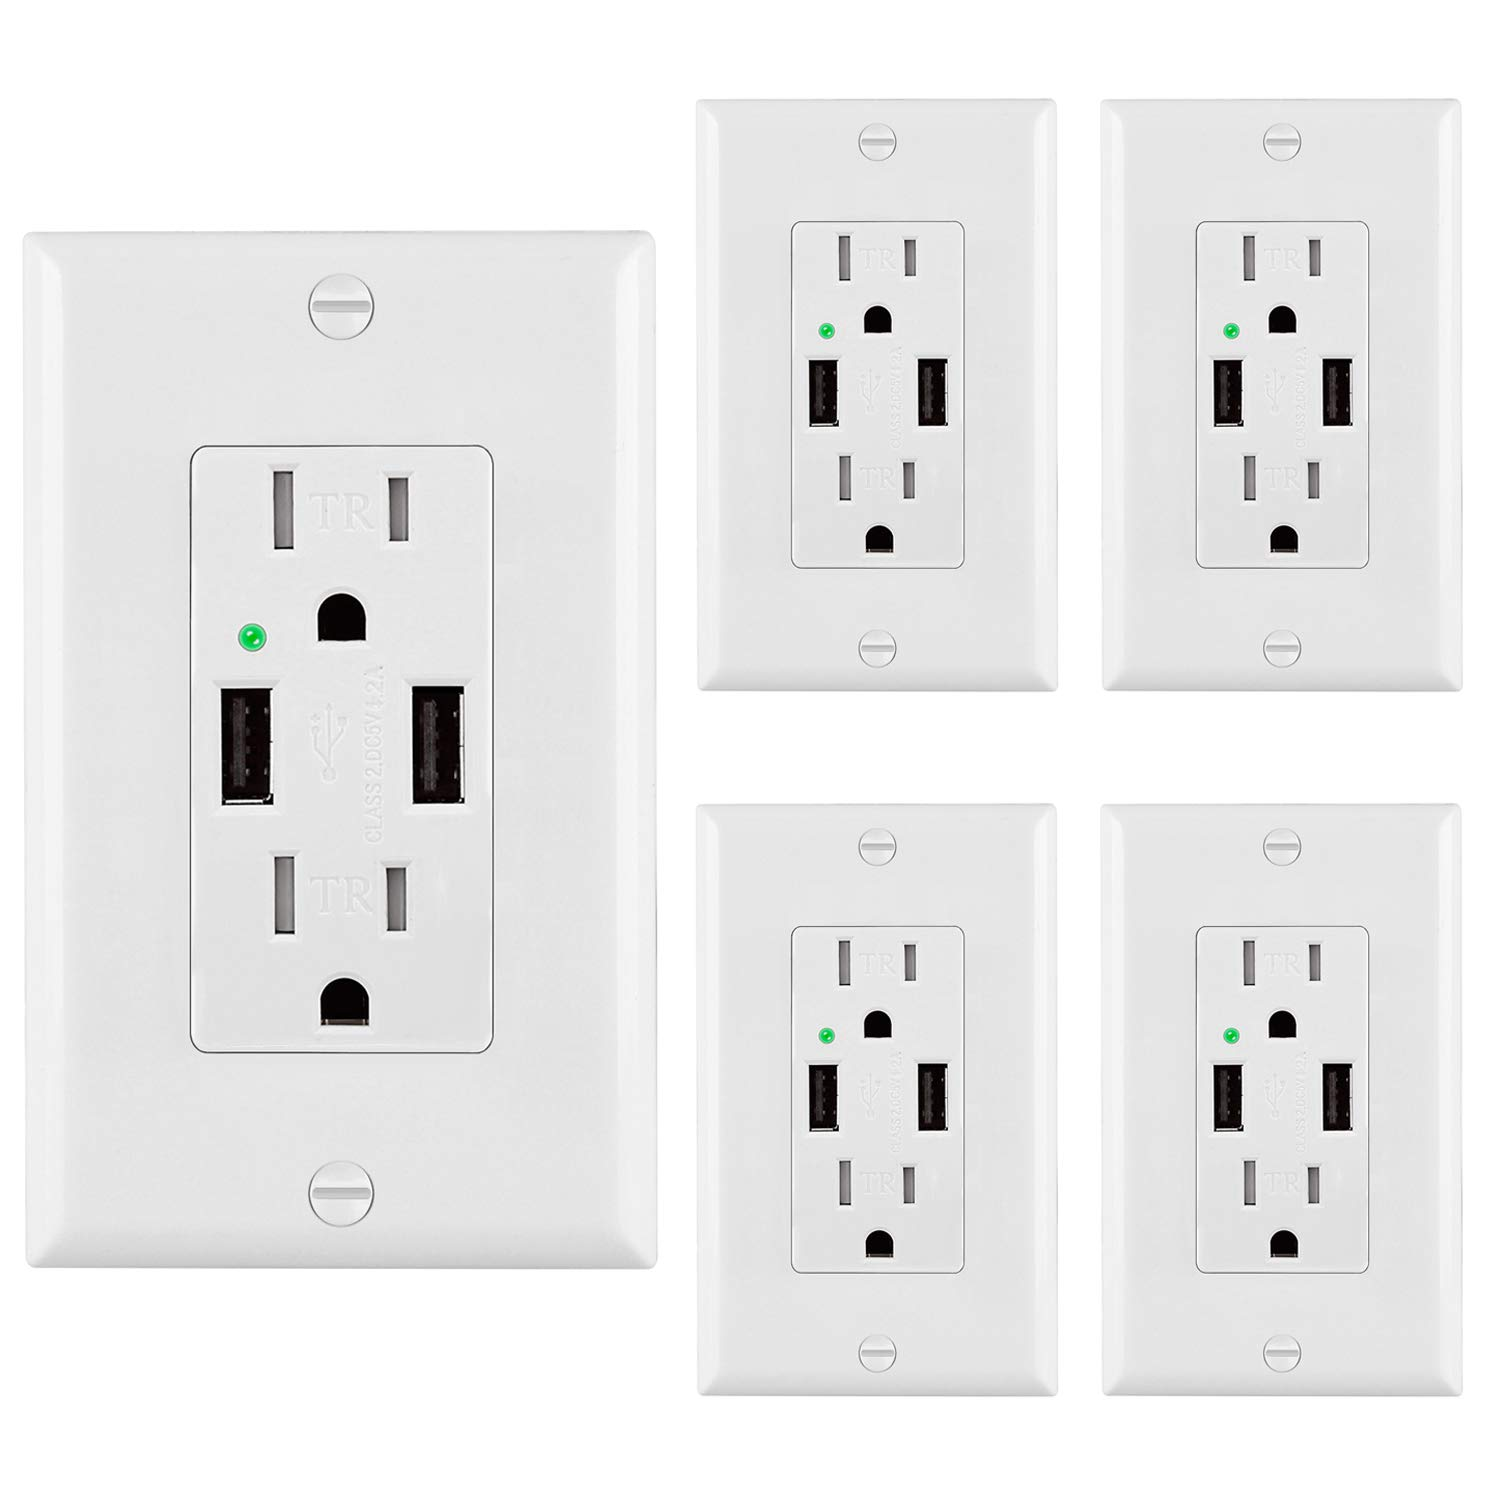 [5 Pack] BESTTEN USB Receptacle Outlets with Dual USB Charging Ports (4.2 Amp Shared) and 2 Tamper-Resistant AC Sockets (15A/125V/1875W), Wall Plates Included, UL Listed, White